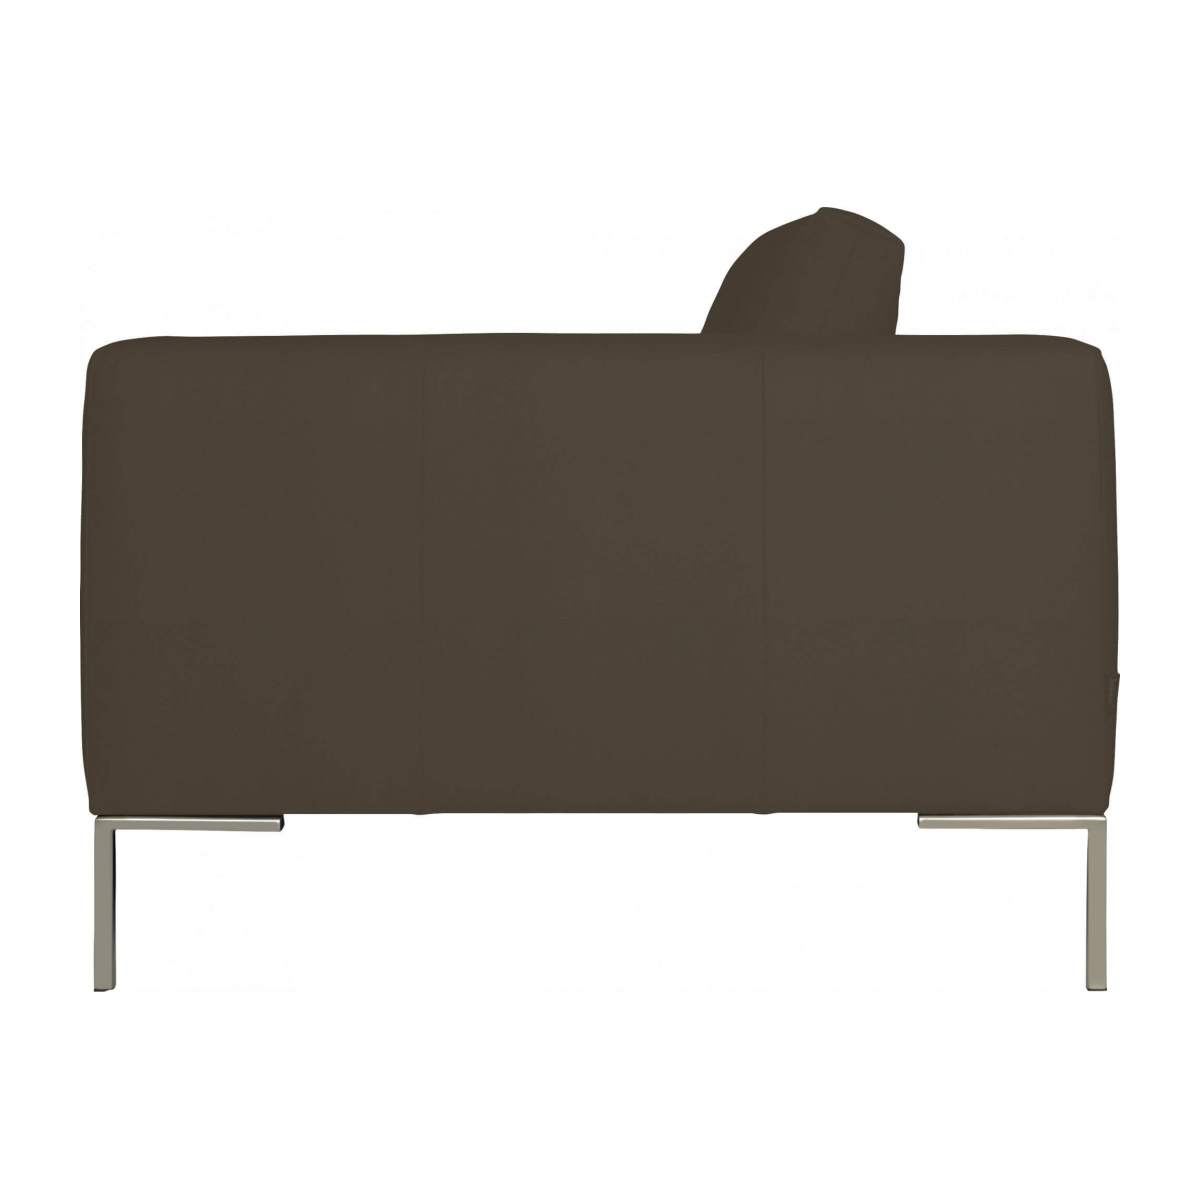 3 seater sofa in Eton veined leather, stone n°5